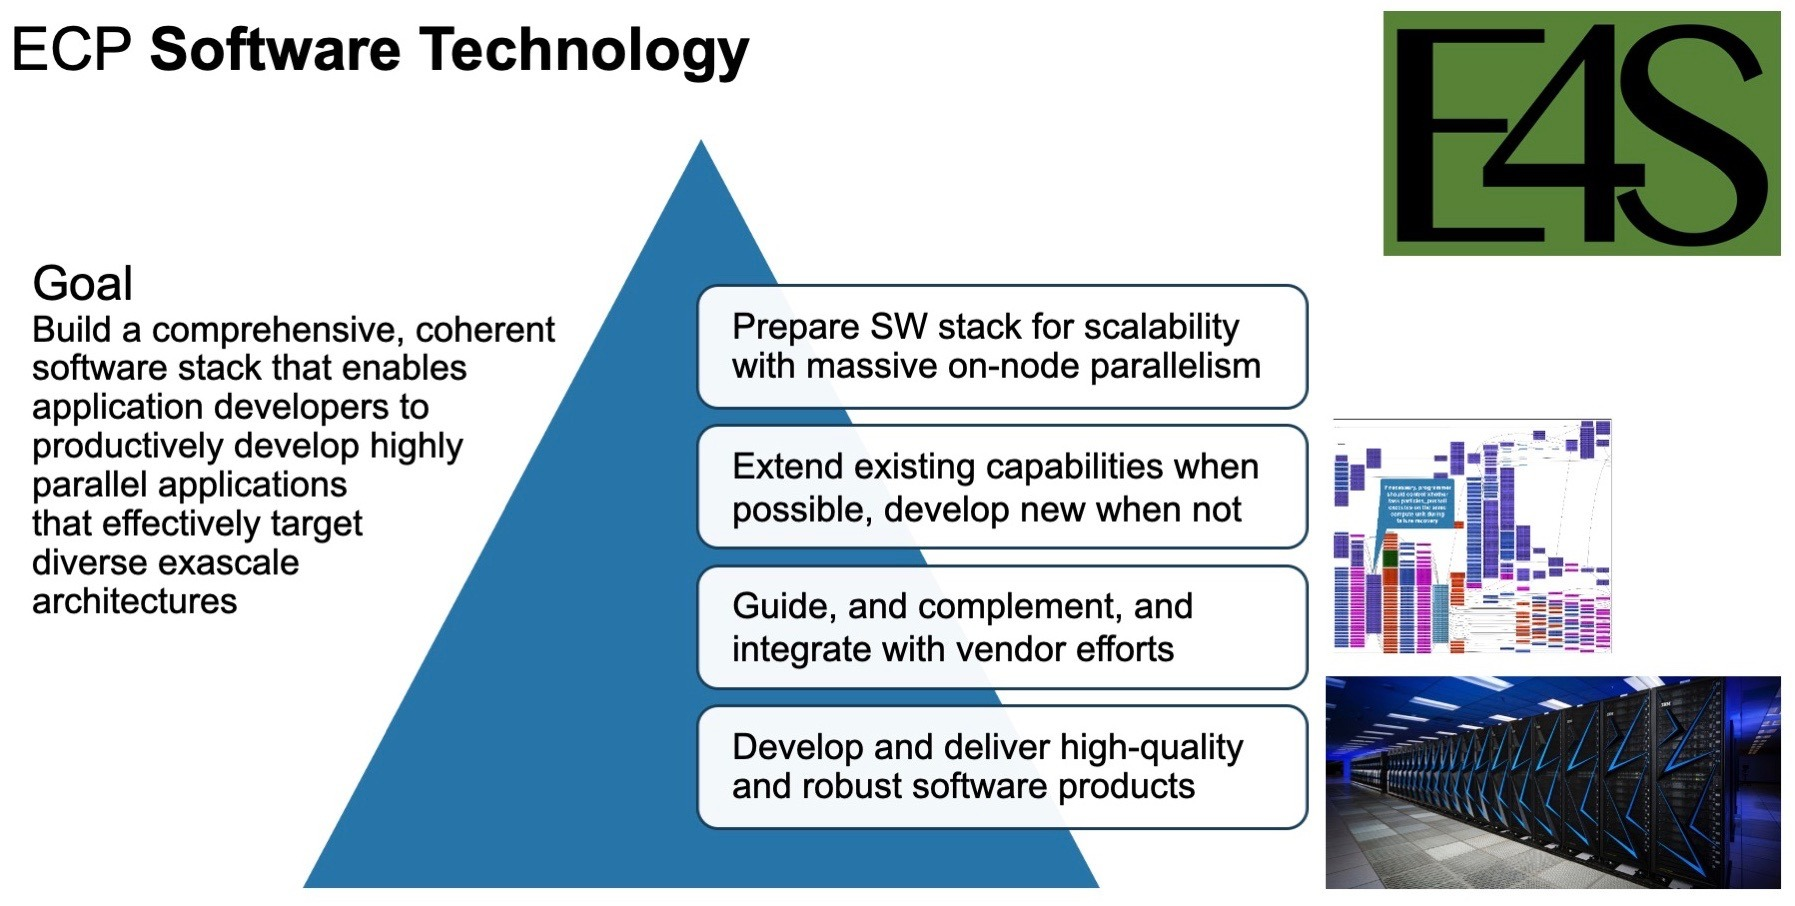 The Extreme-scale Scientific Software Stack from the ECP Software Technology research focus area